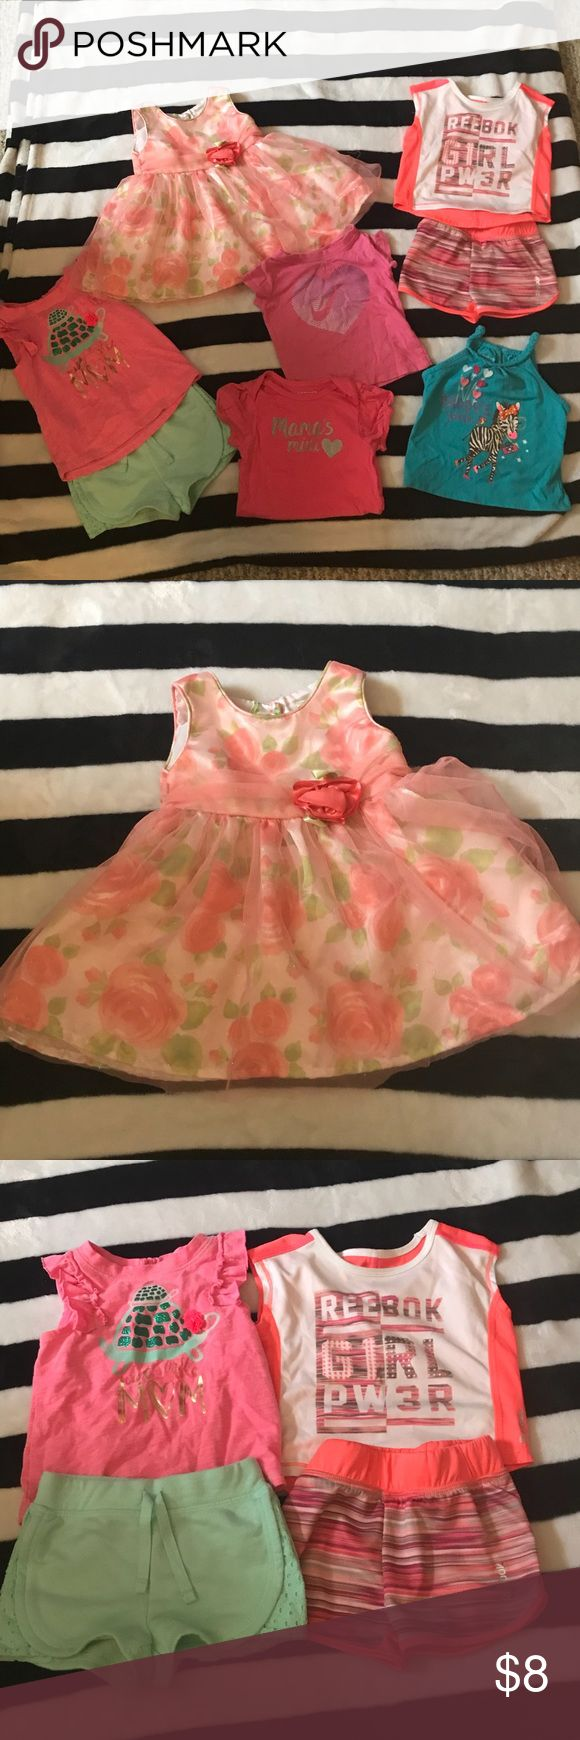 🌸 12 Month Girls Bundle! 8 Pieces! 🌸 Beautiful Peach Dress (12 Months)  Pink Turtle Outfit (12 Months) All 3 Tees (12 Months) Reebok Outfit (12 Months)  8 Pieces for $8!! Matching Sets